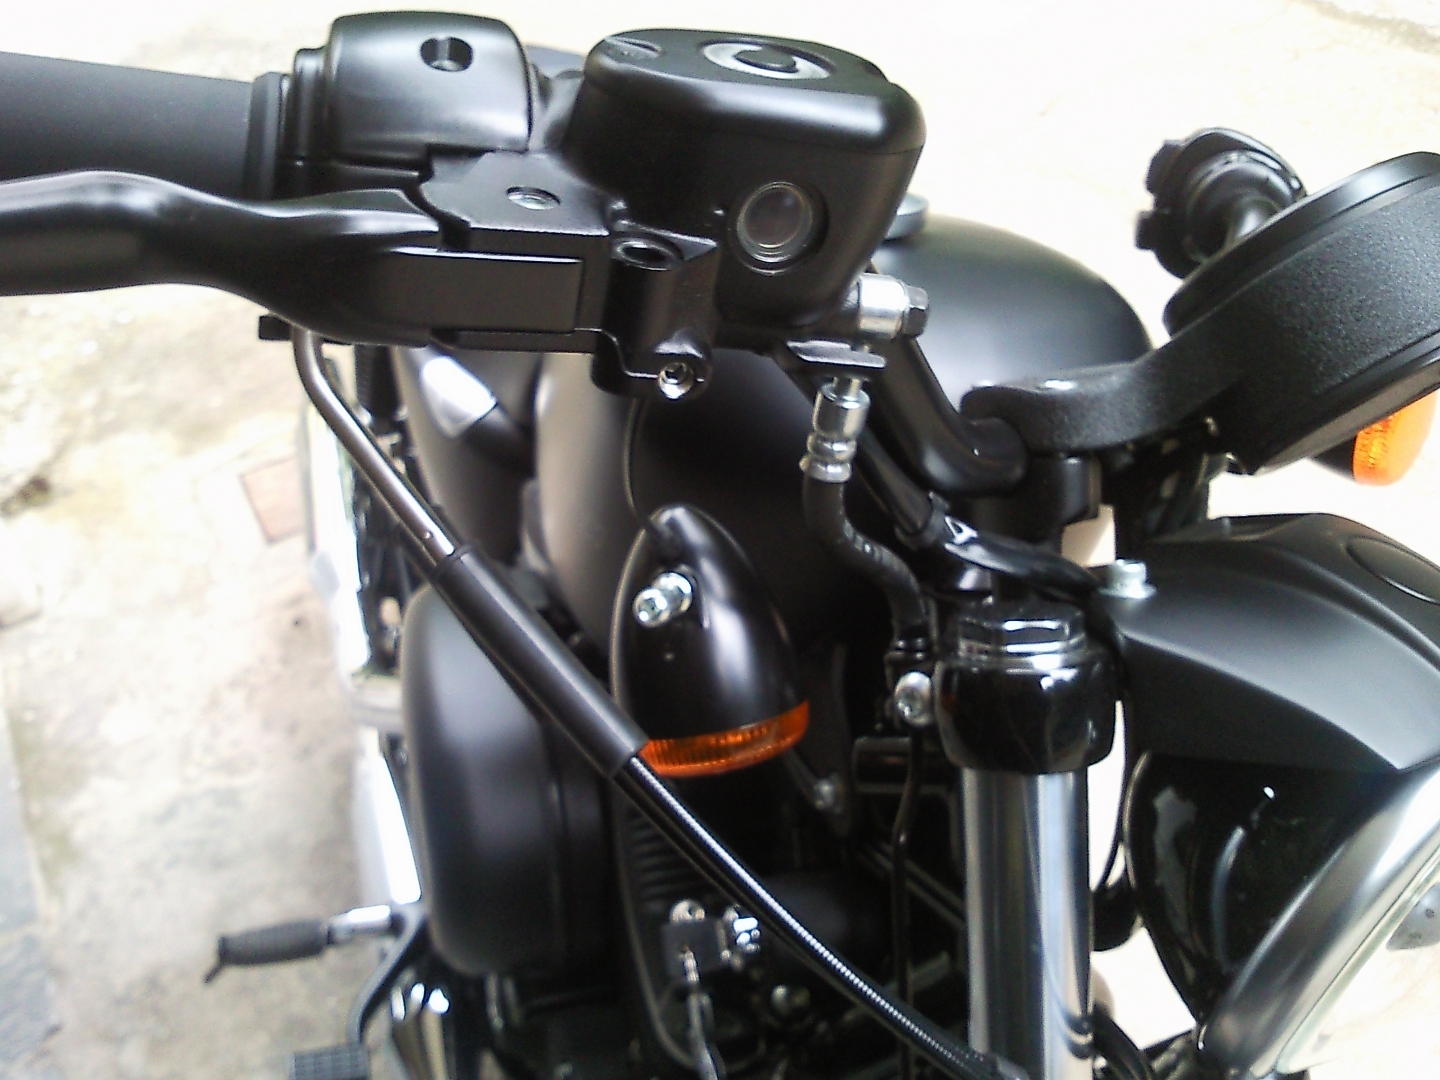 2003 harley davidson sportster wiring diagram honda fourtrax 300 how-to: flipped mirrors on a harley-davidson | xorl %eax, %eax